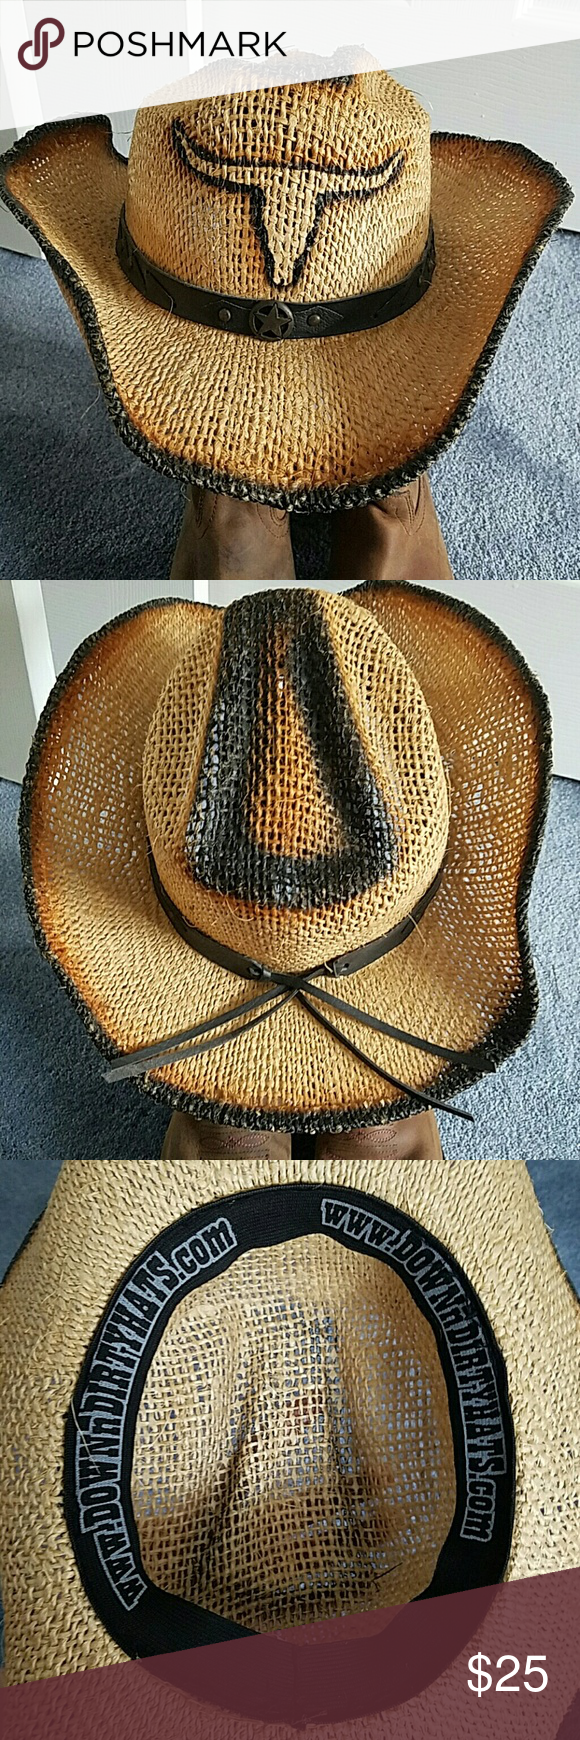 Cowgirl hat Awesome hat with Texas longhorn and cute leather wrap. Worn once. Wear to concerts, beach or just out and about!! Accessories Hats